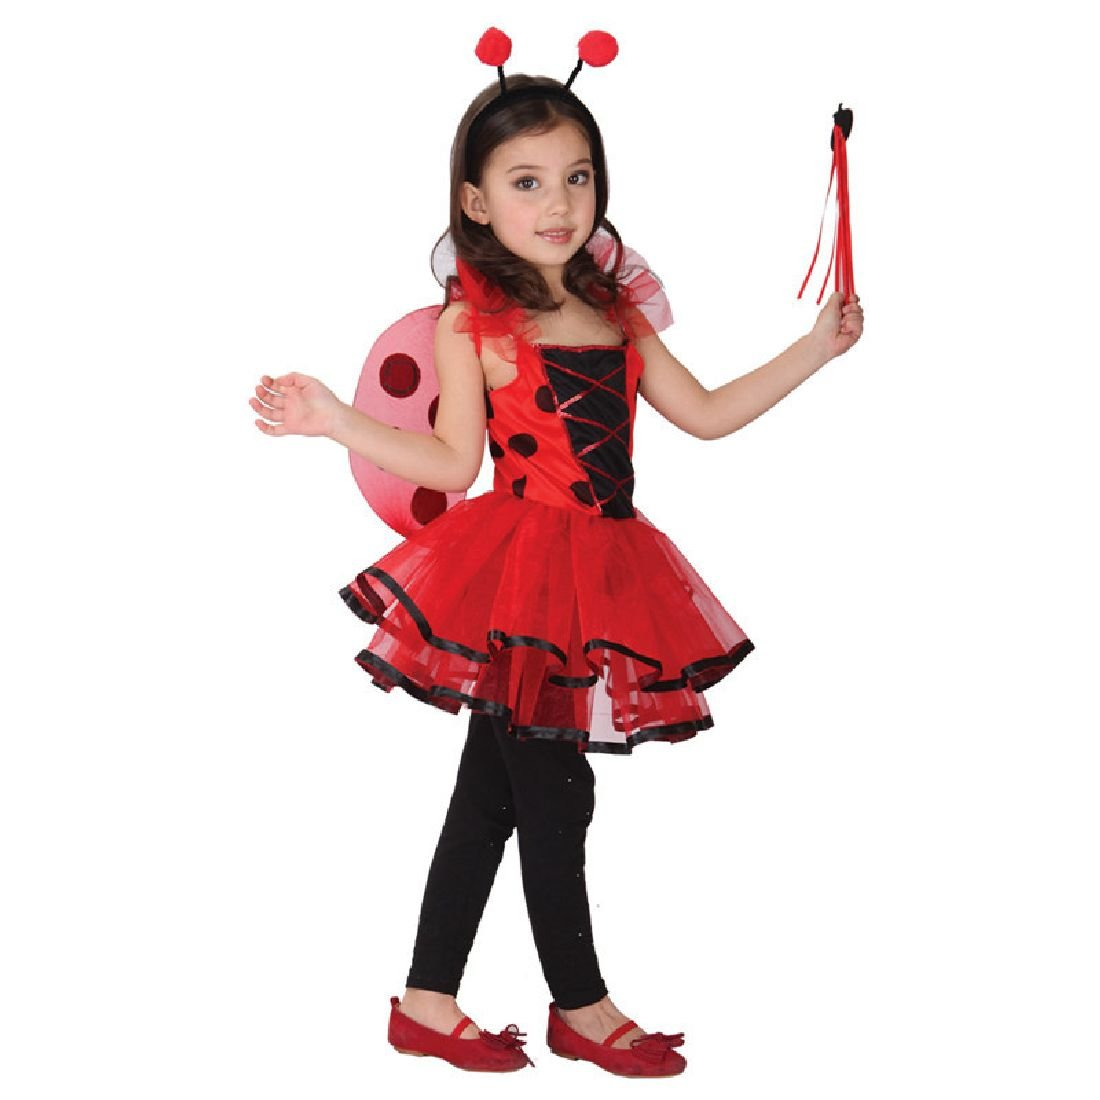 Cute Ladybug Costume Fantasia Girls Halloween Cosplay by Crystalbella Inflatable Cos